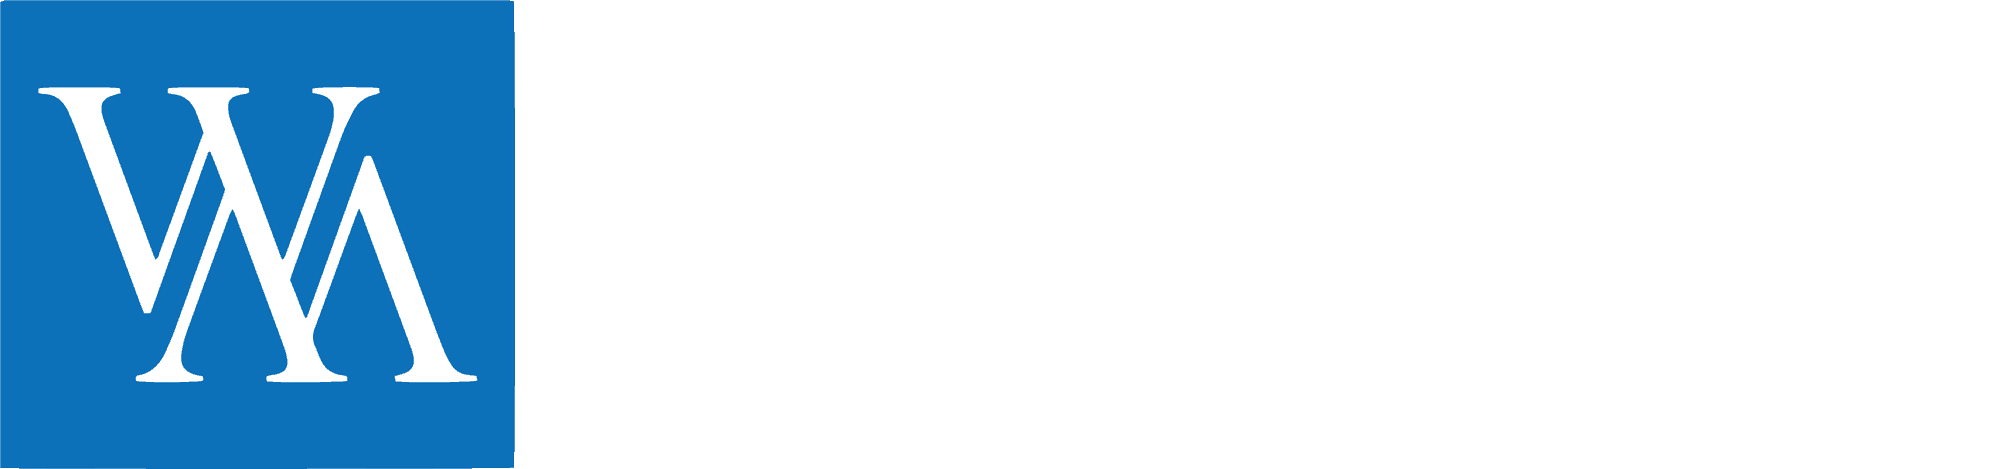 Contact Us West Metro Appliance Repair